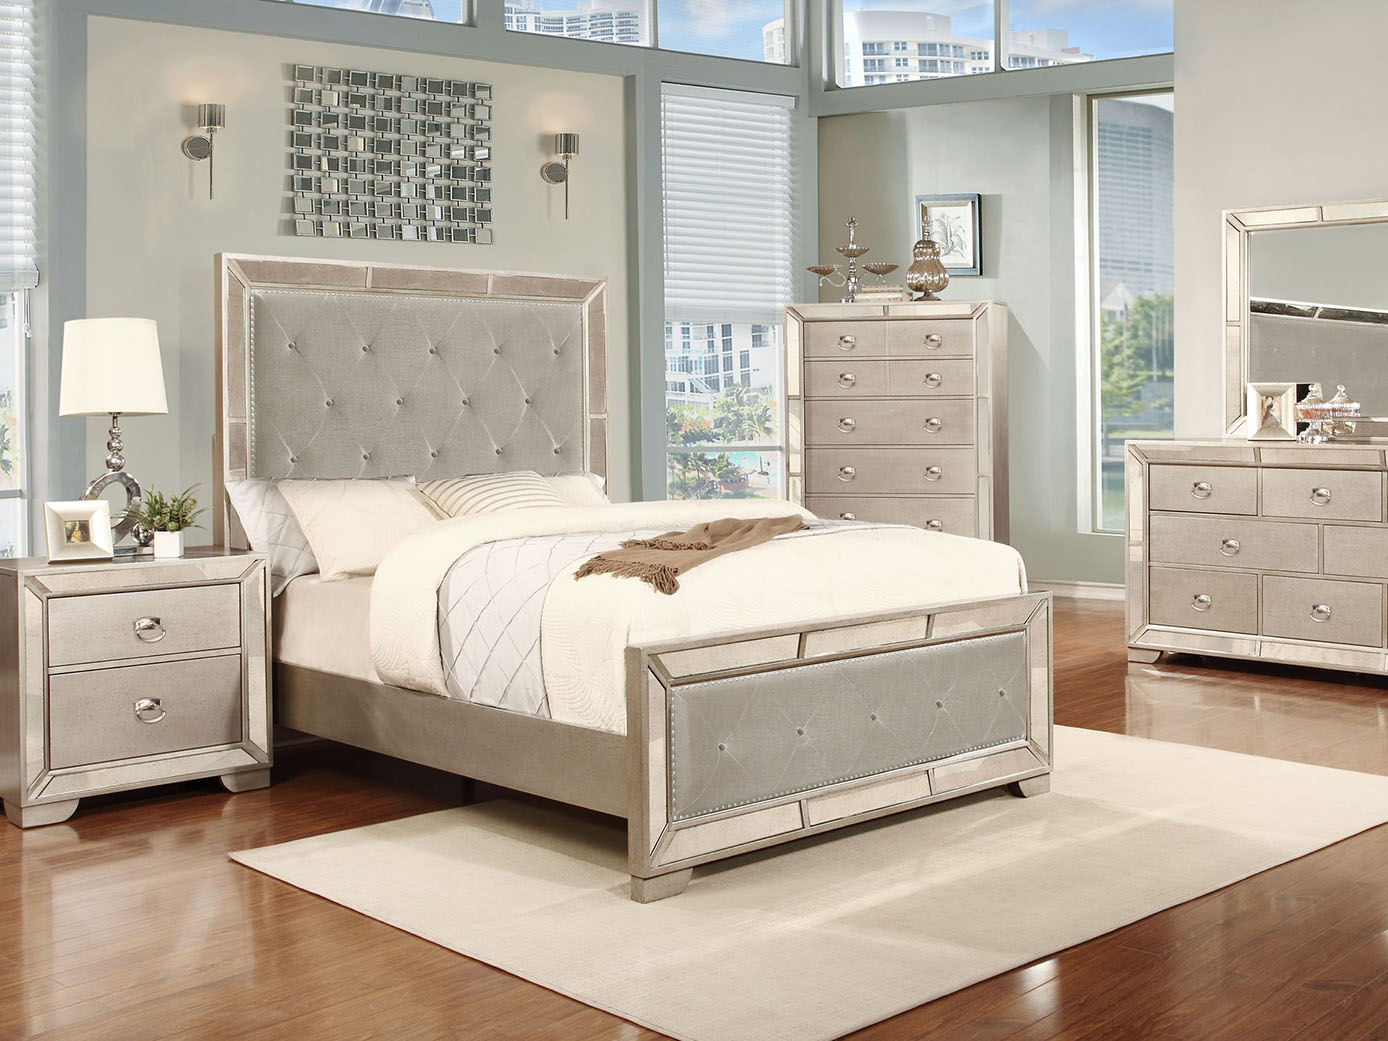 Rana Furniture Bedroom Sets Night Stands